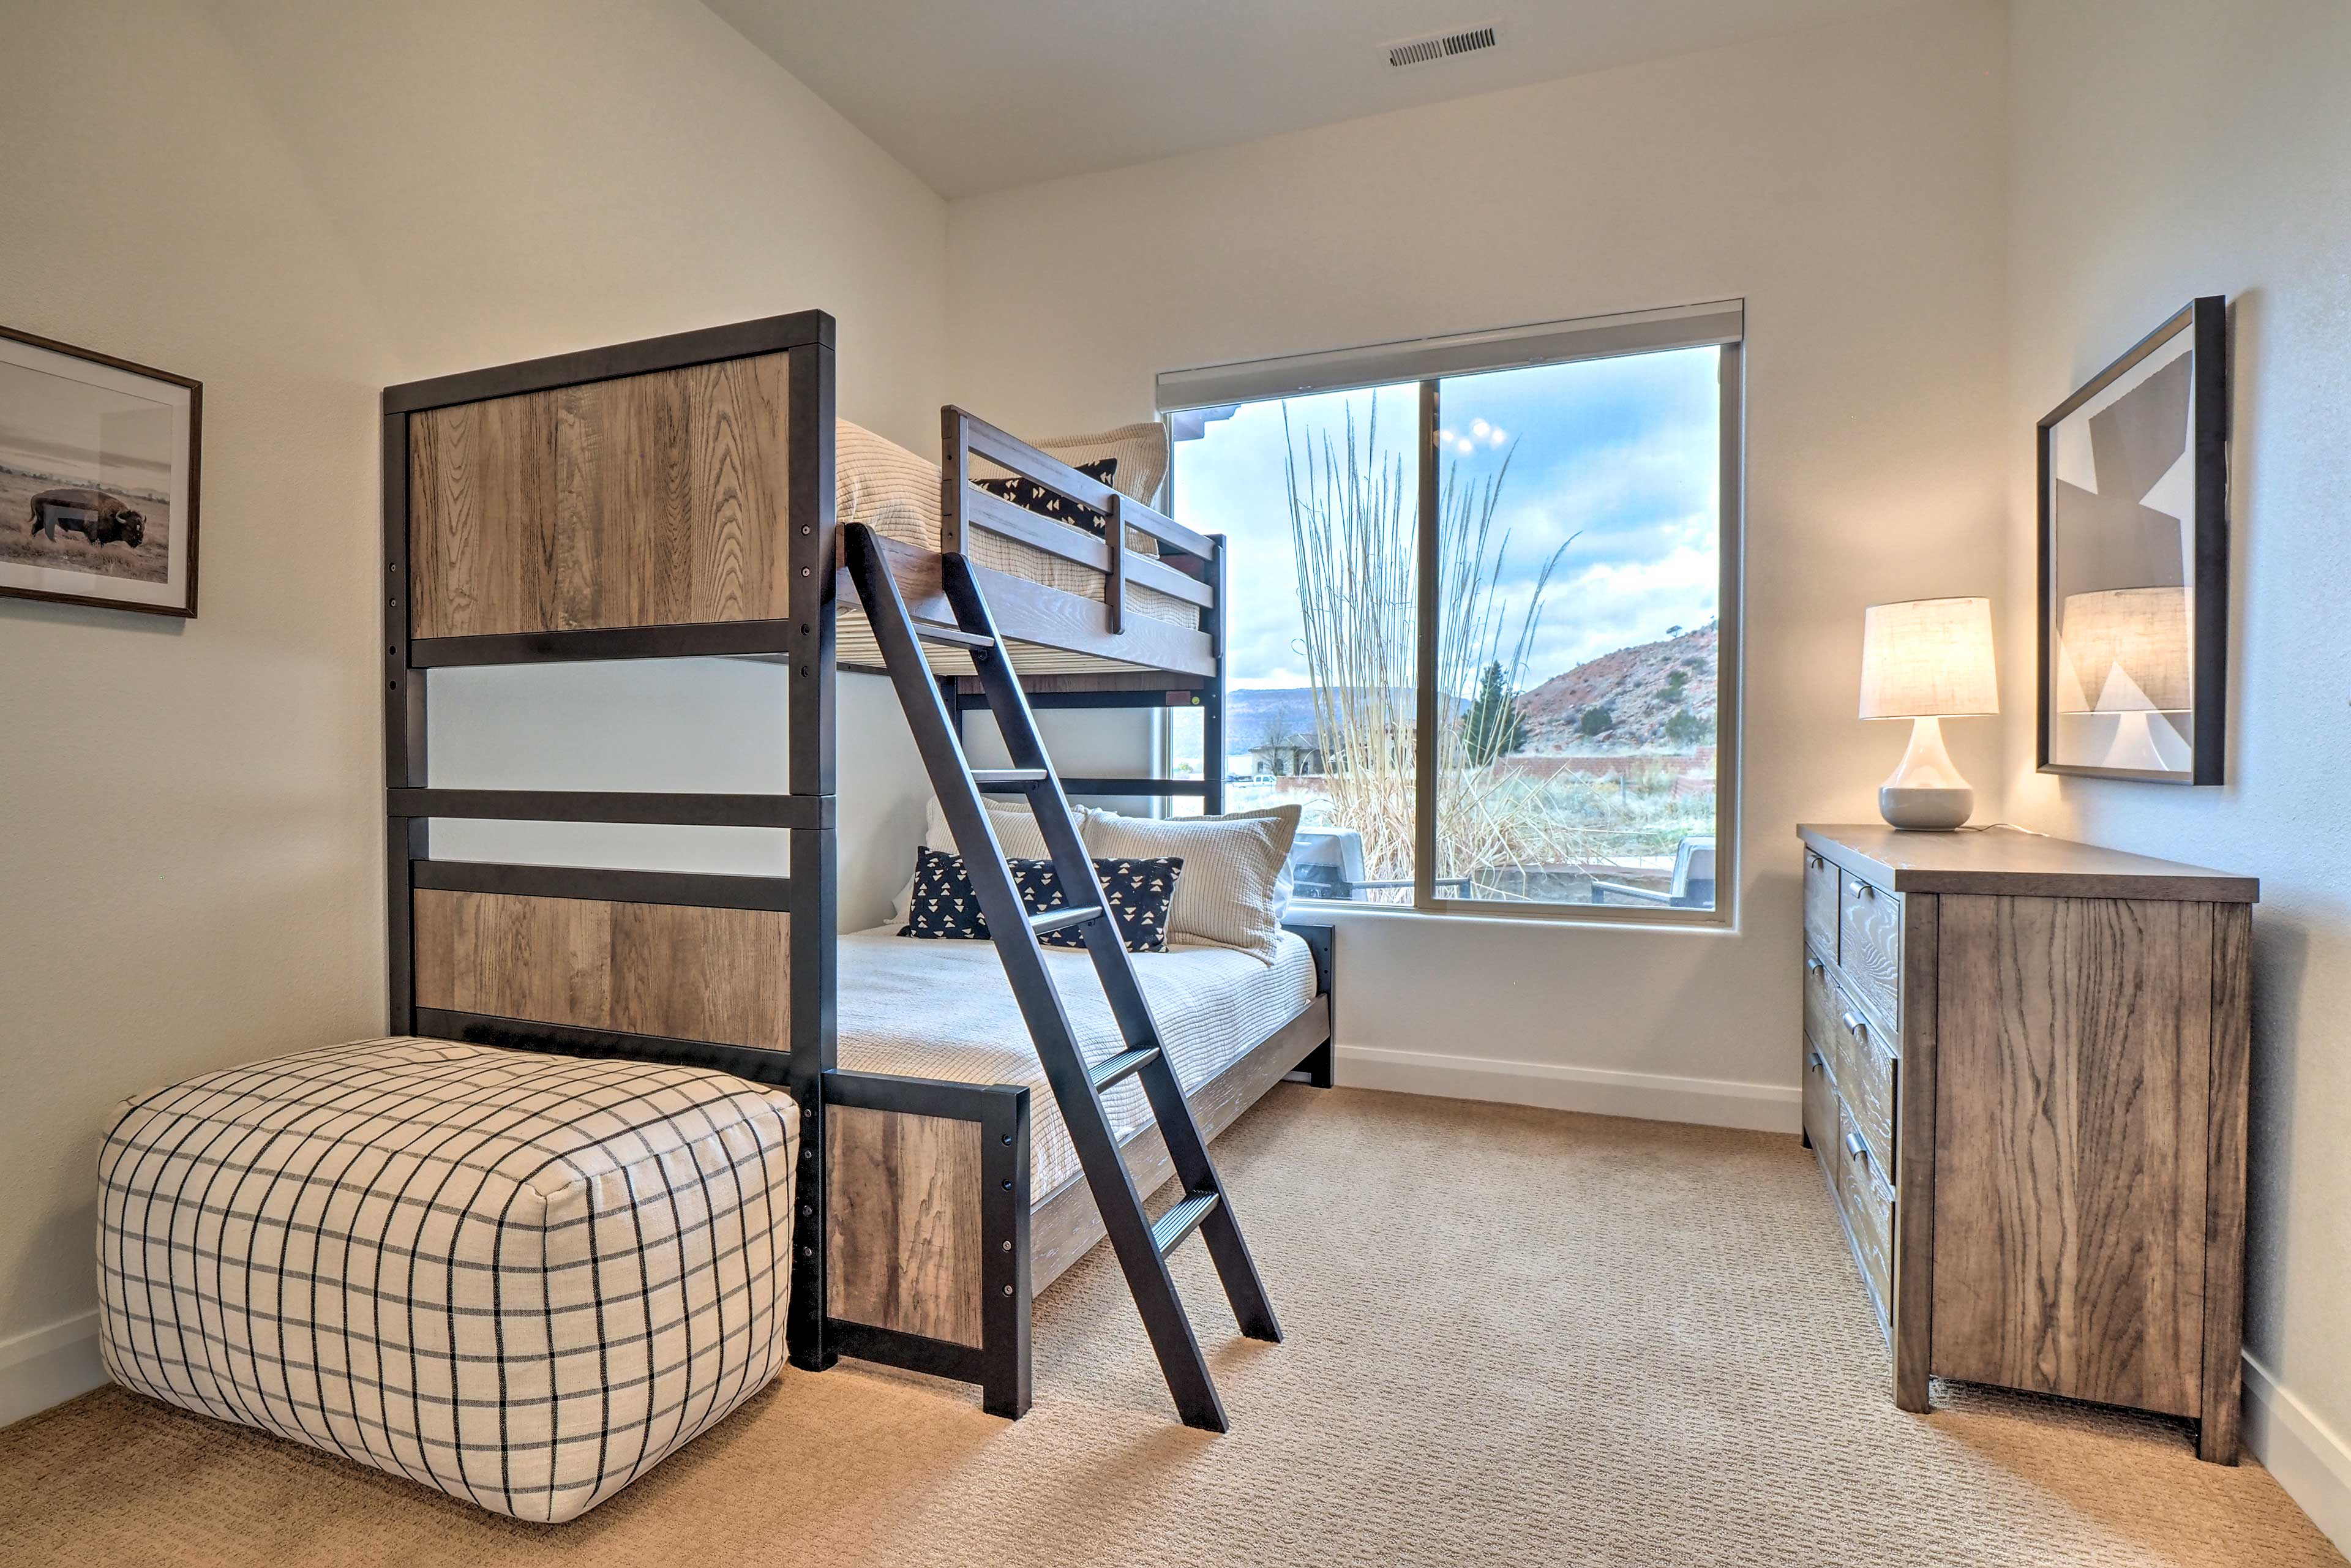 A third bedroom is home to a twin/full bunk bed.